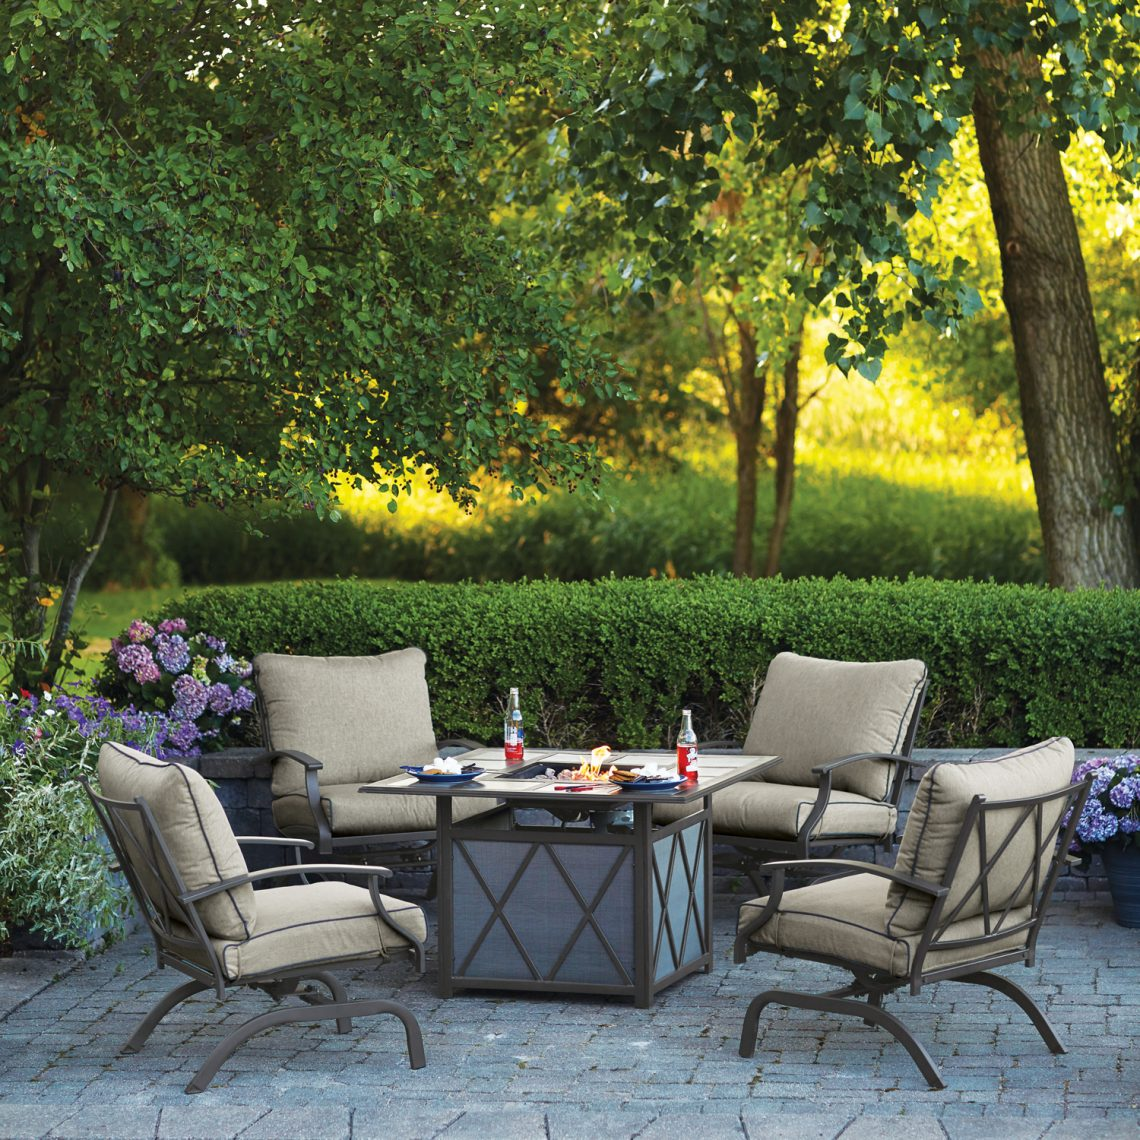 outdoor furniture decor. hortons offers a variety of patio sets bistro hightop benches and outdoor decor at our lagrange location get directions furniture